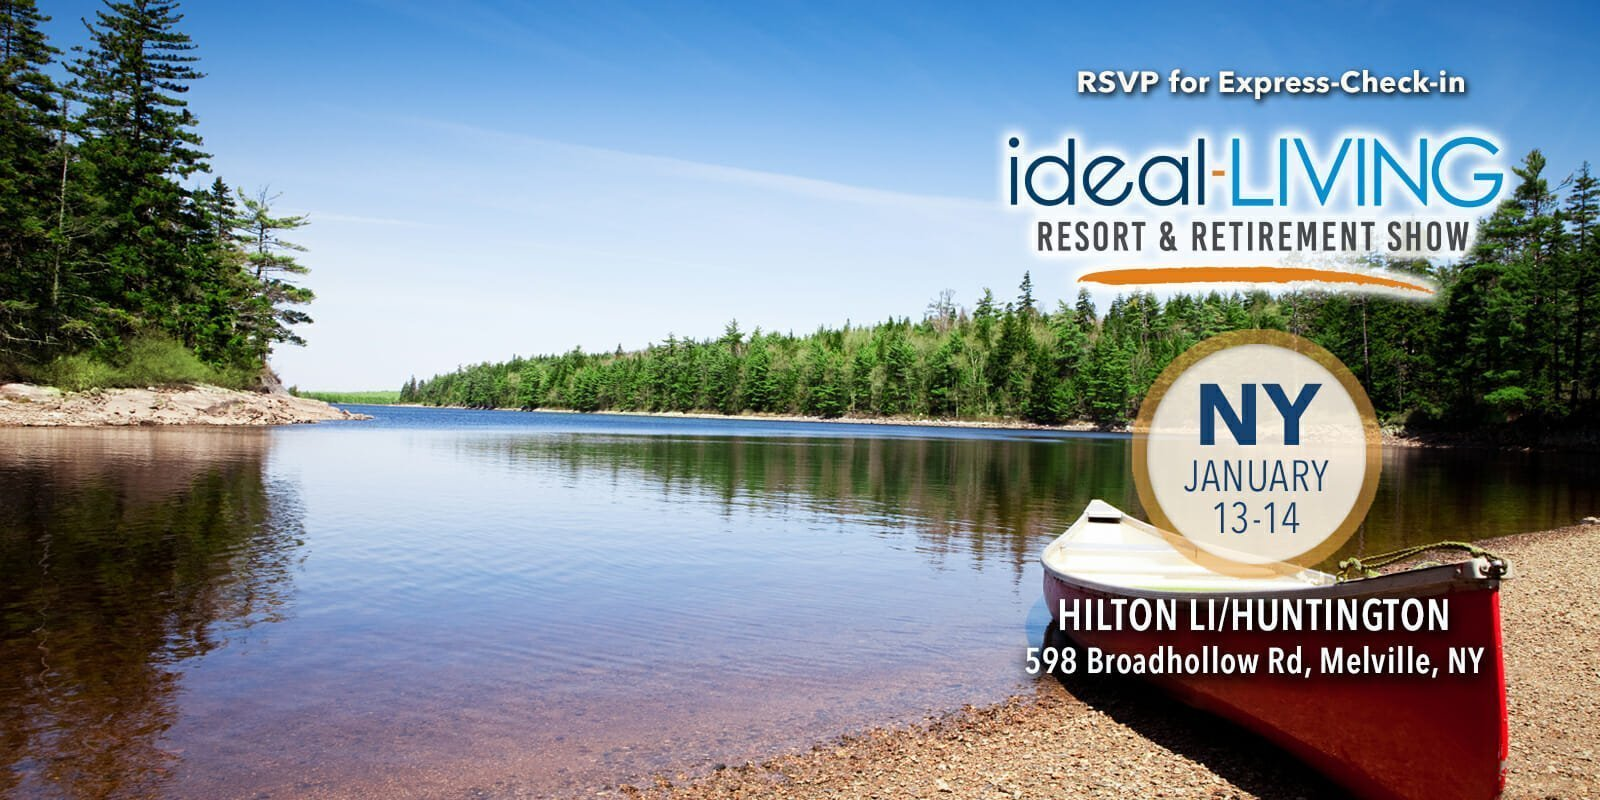 NY ideal-LIVING Resort & Retirement show